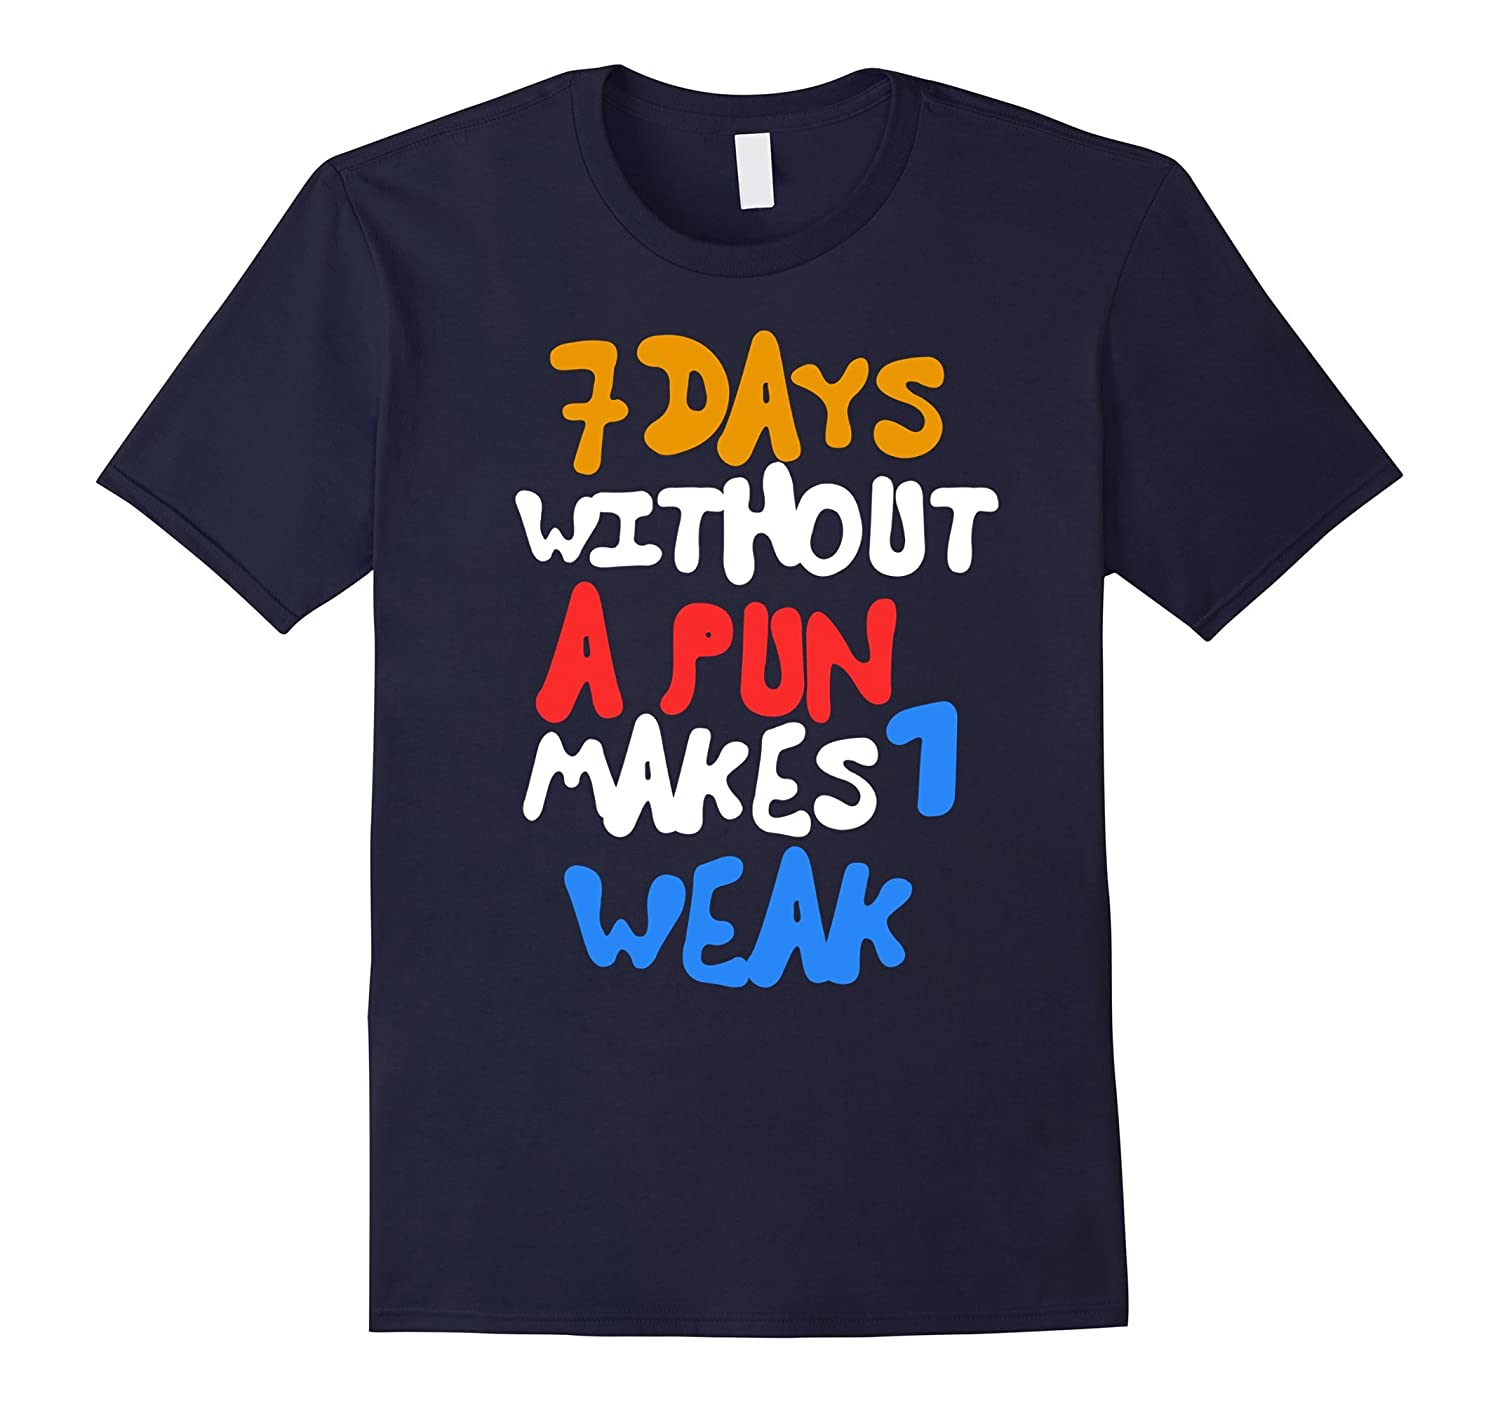 7 Days Without A Pun Makes 1 Weak Week Cute Funny Joke Shirt-CL